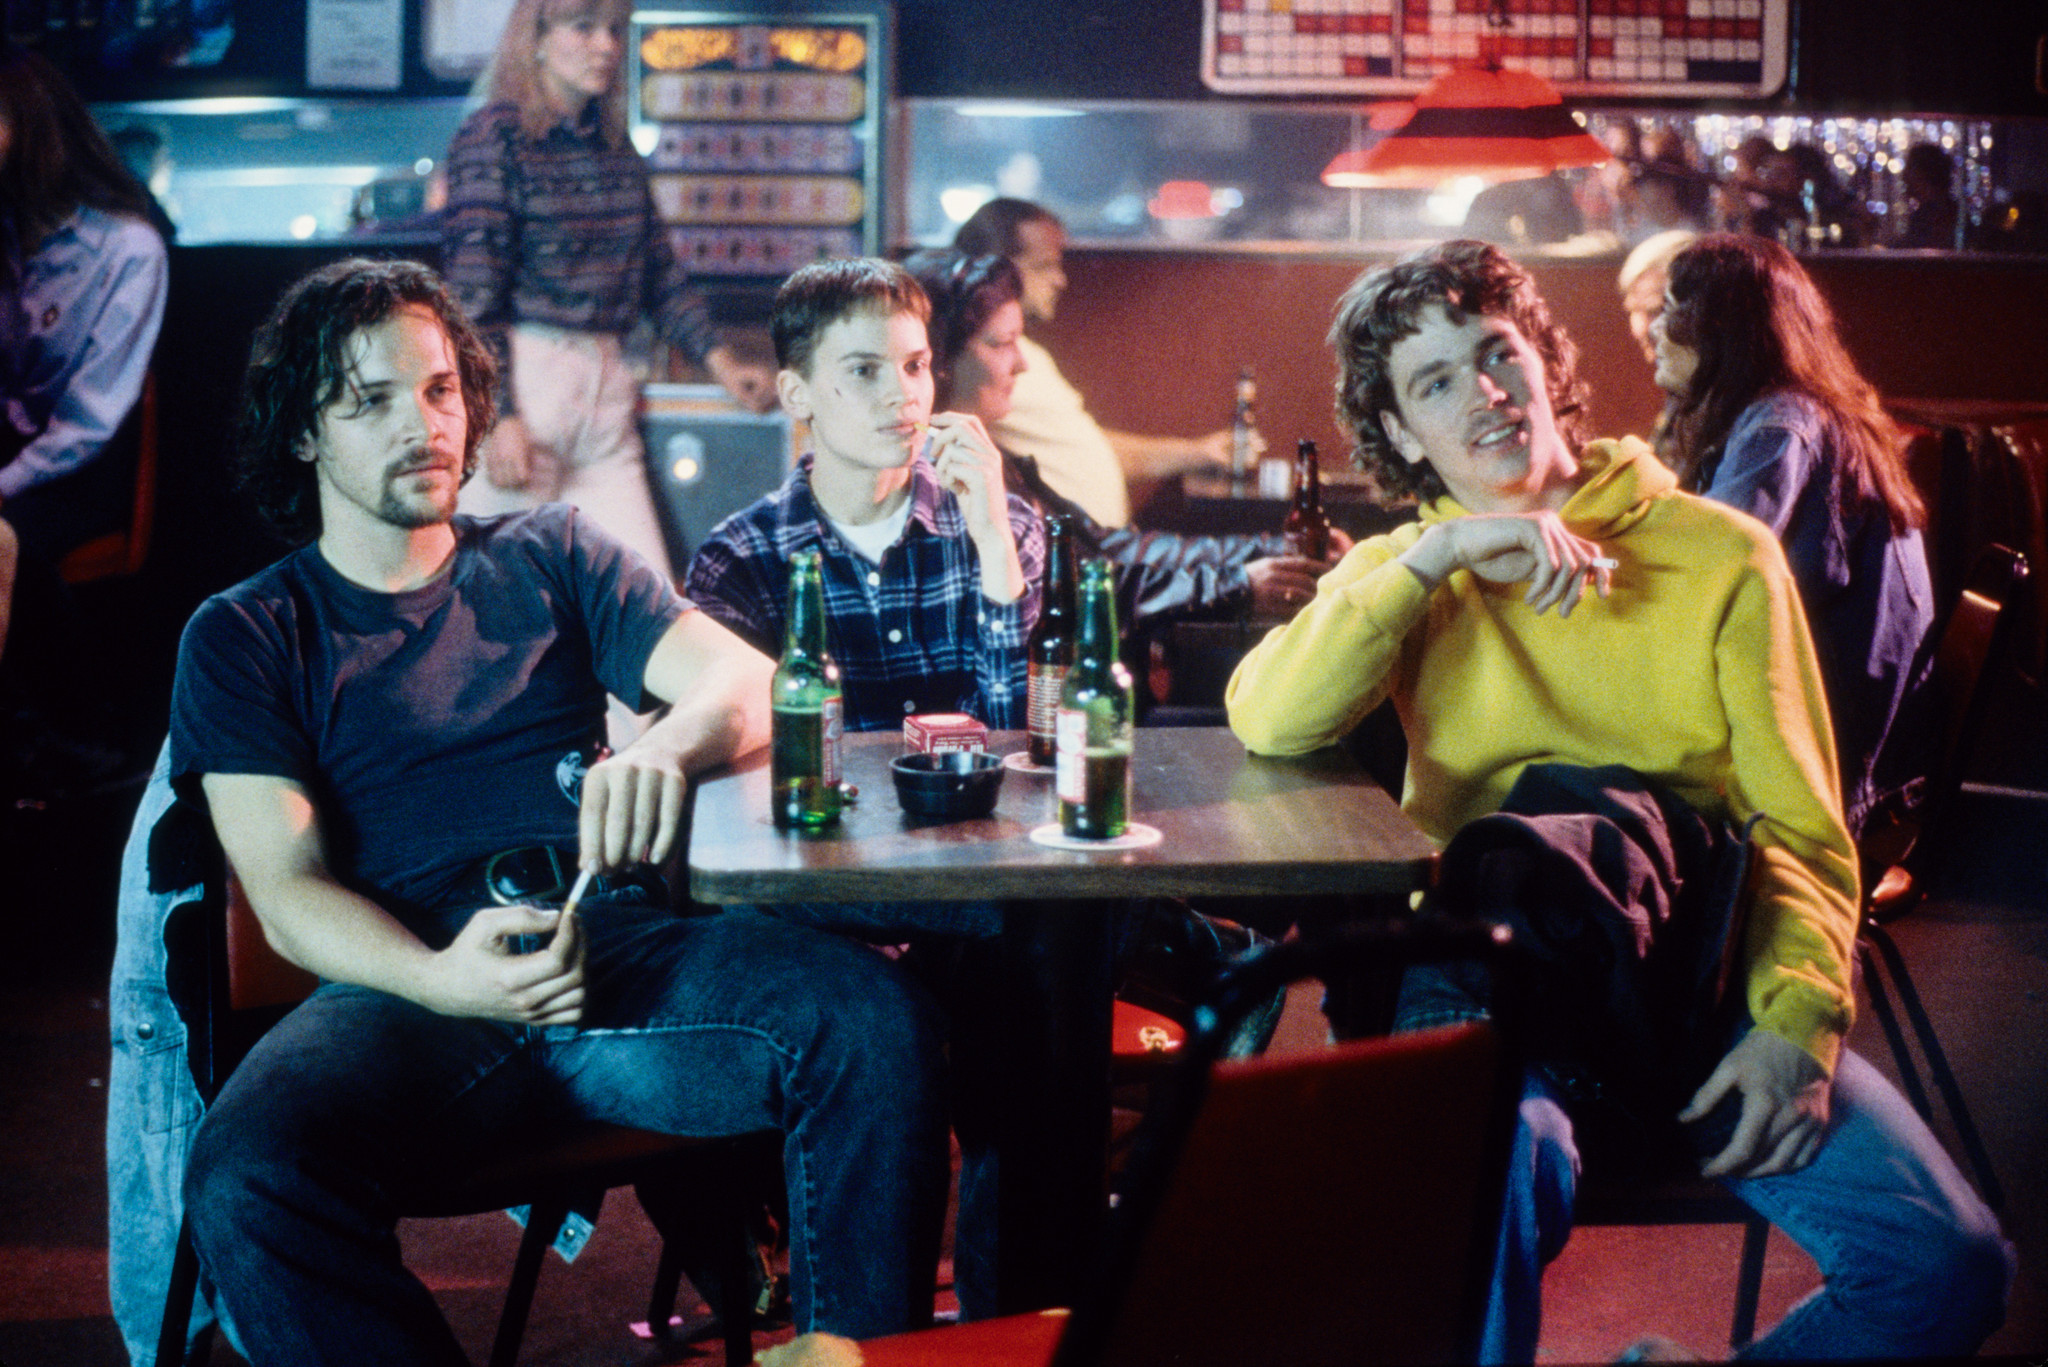 Hilary Swank, Peter Sarsgaard, and Brendan Sexton III in Boys Don't Cry (1999)